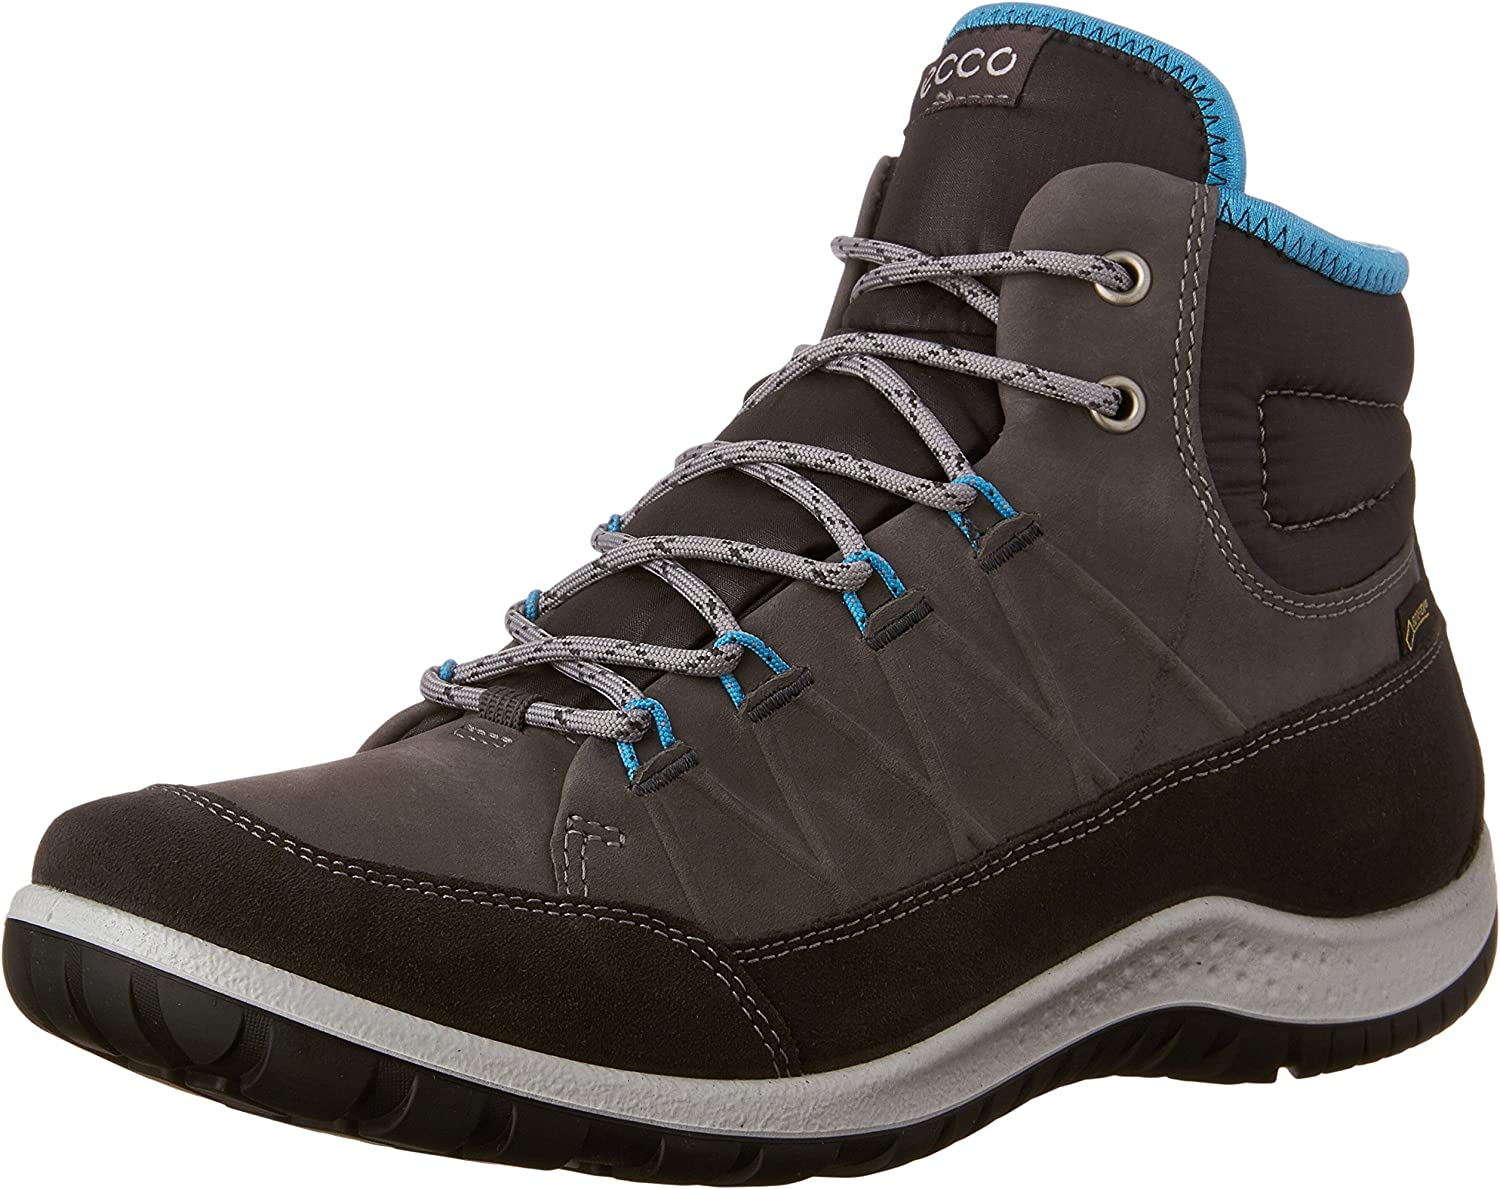 ECCO shoes Women's Apina GTX High Boot, Moonless, 42 EU 11-11.5 M US